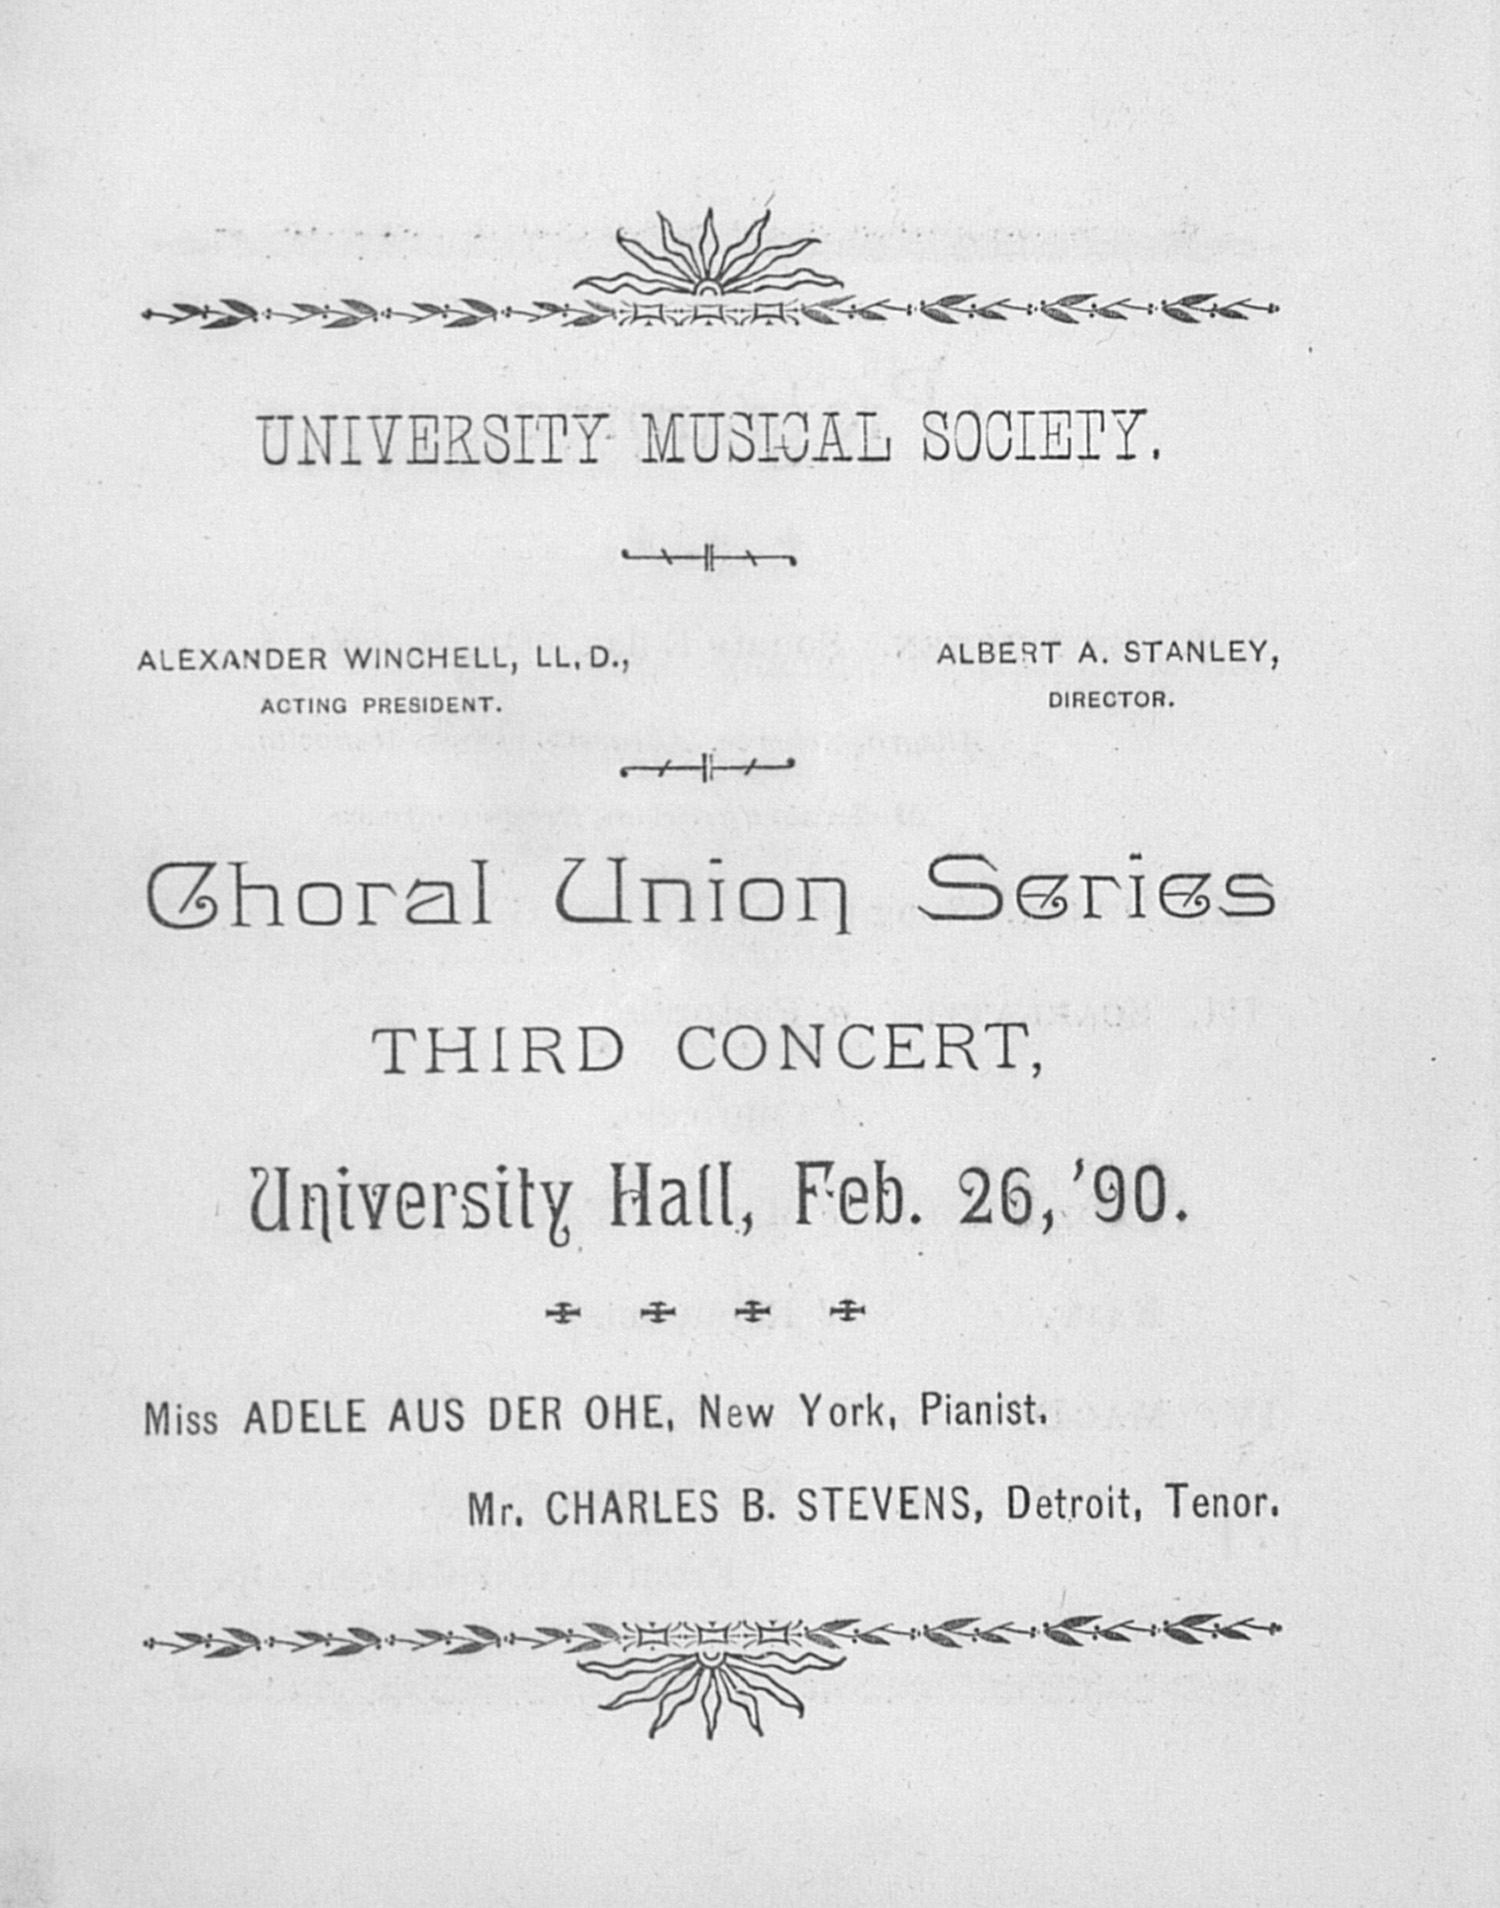 UMS Concert Program, Feb. 26,'90: Choral Union Series --  image